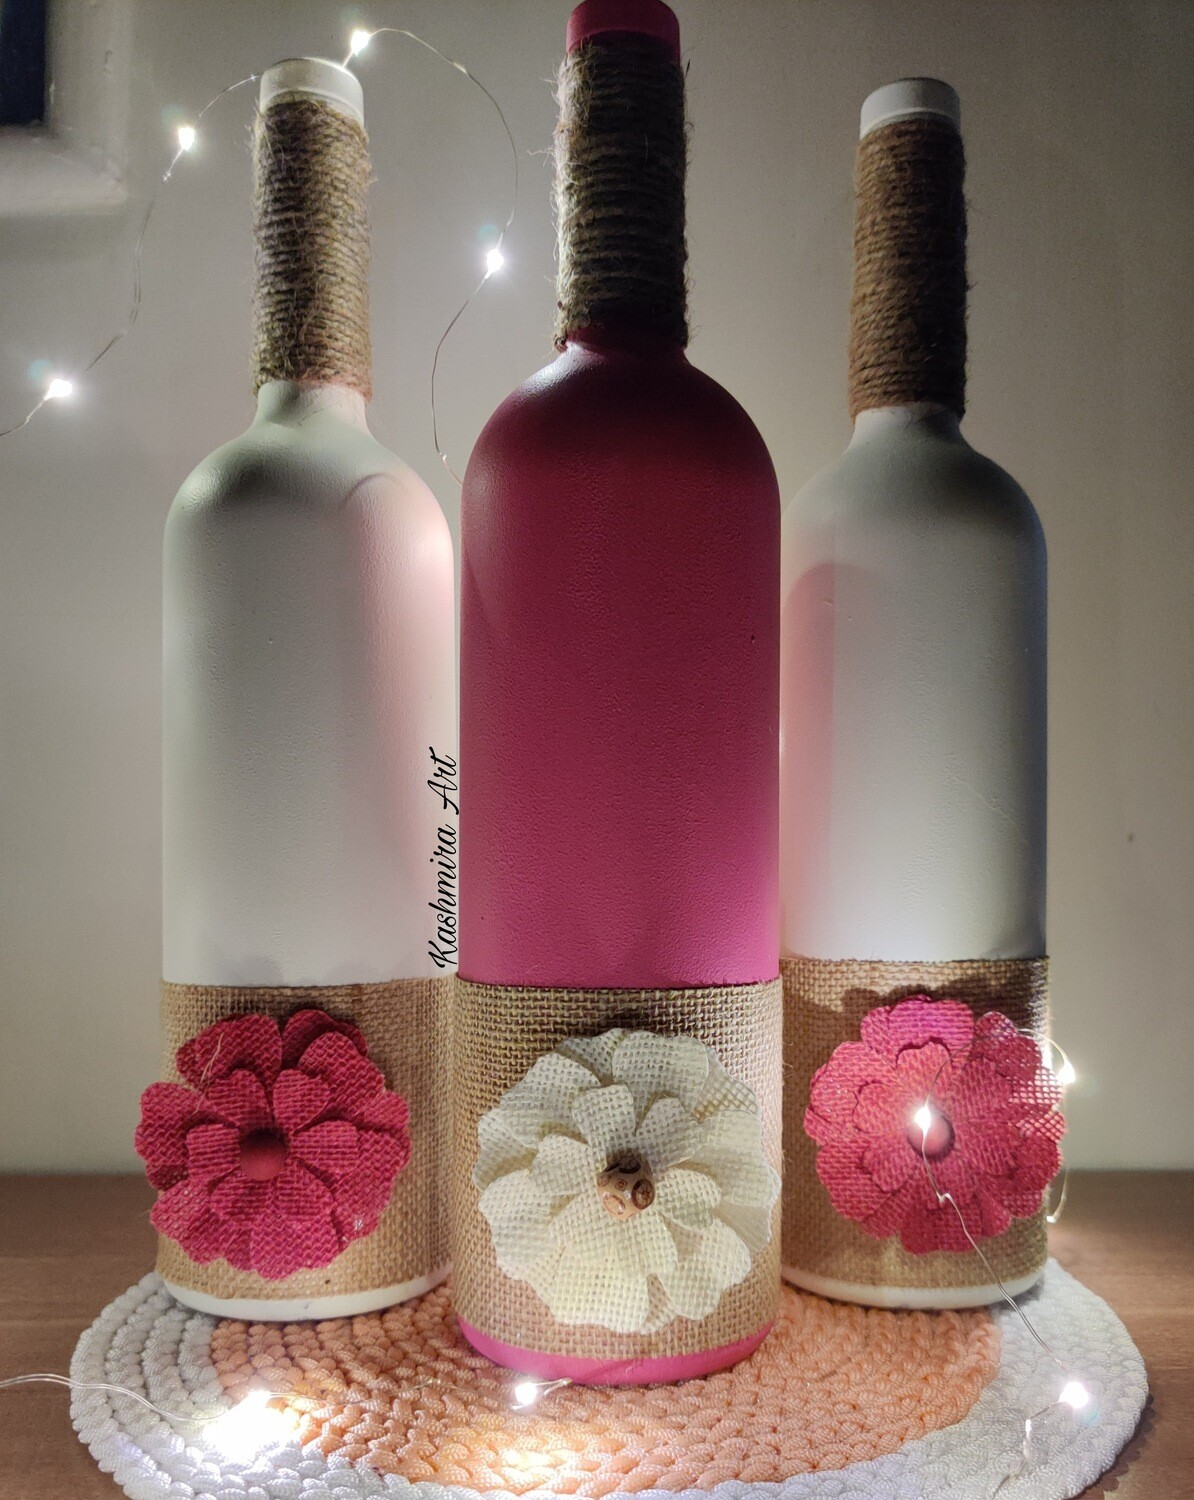 Home Sweet Home Decorative Bottles